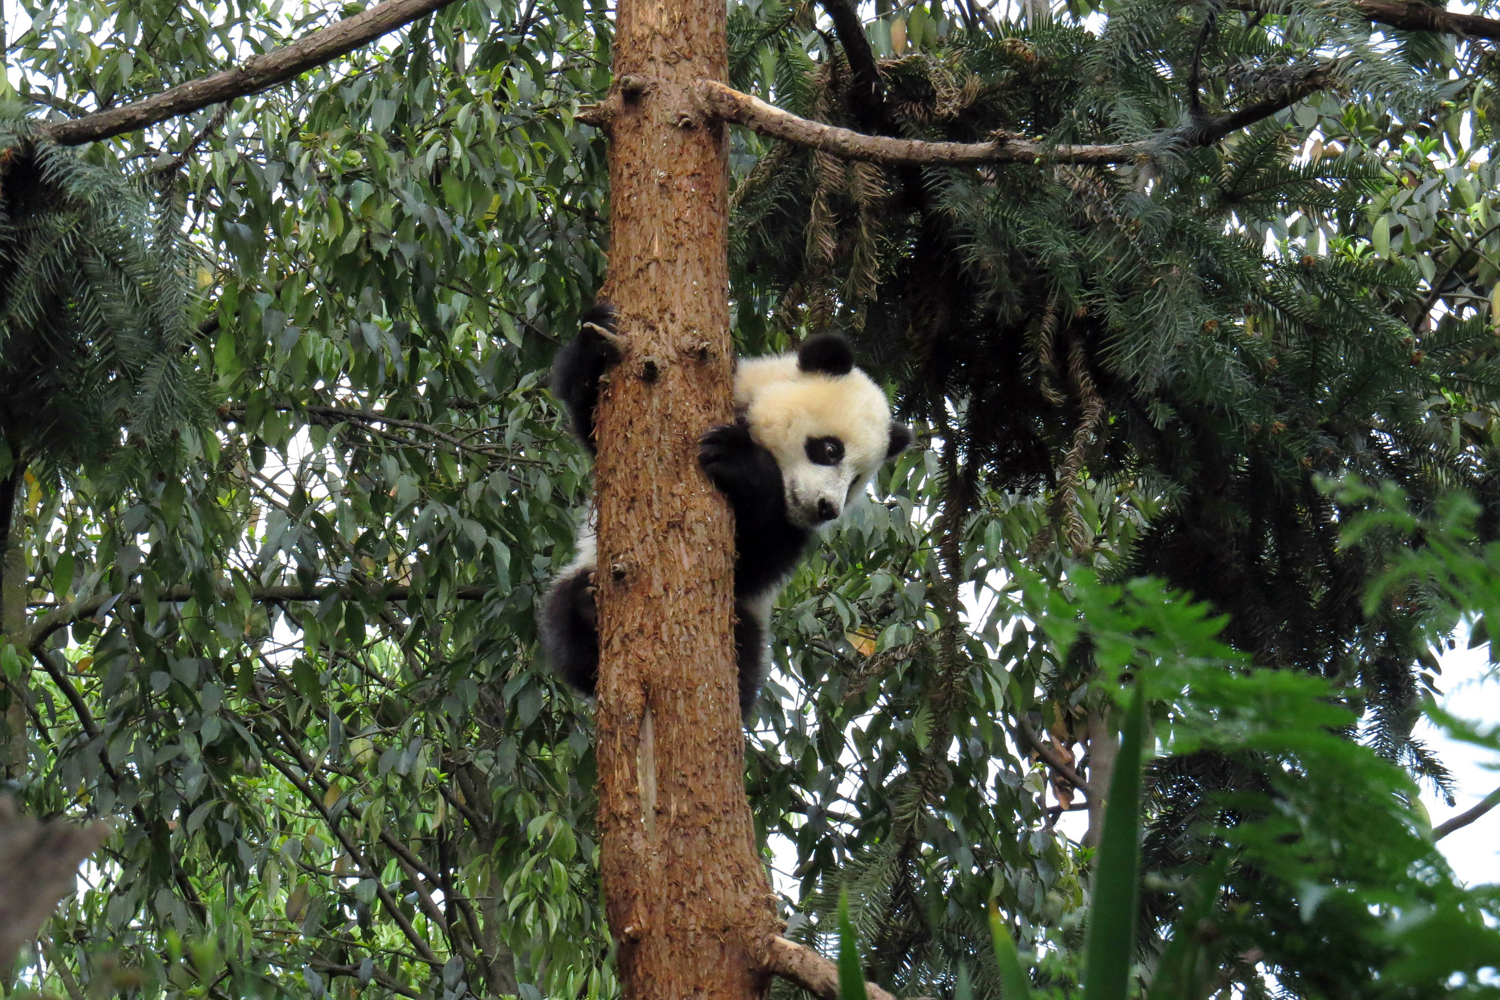 April 20, 2013. A giant panda climbs a tree in the Bifengxia Base of China Conservation and Research Centre for the giant panda after a magnitude 7.0 earthquake hit the city of Ya'an, southwest China's Sichuan province.